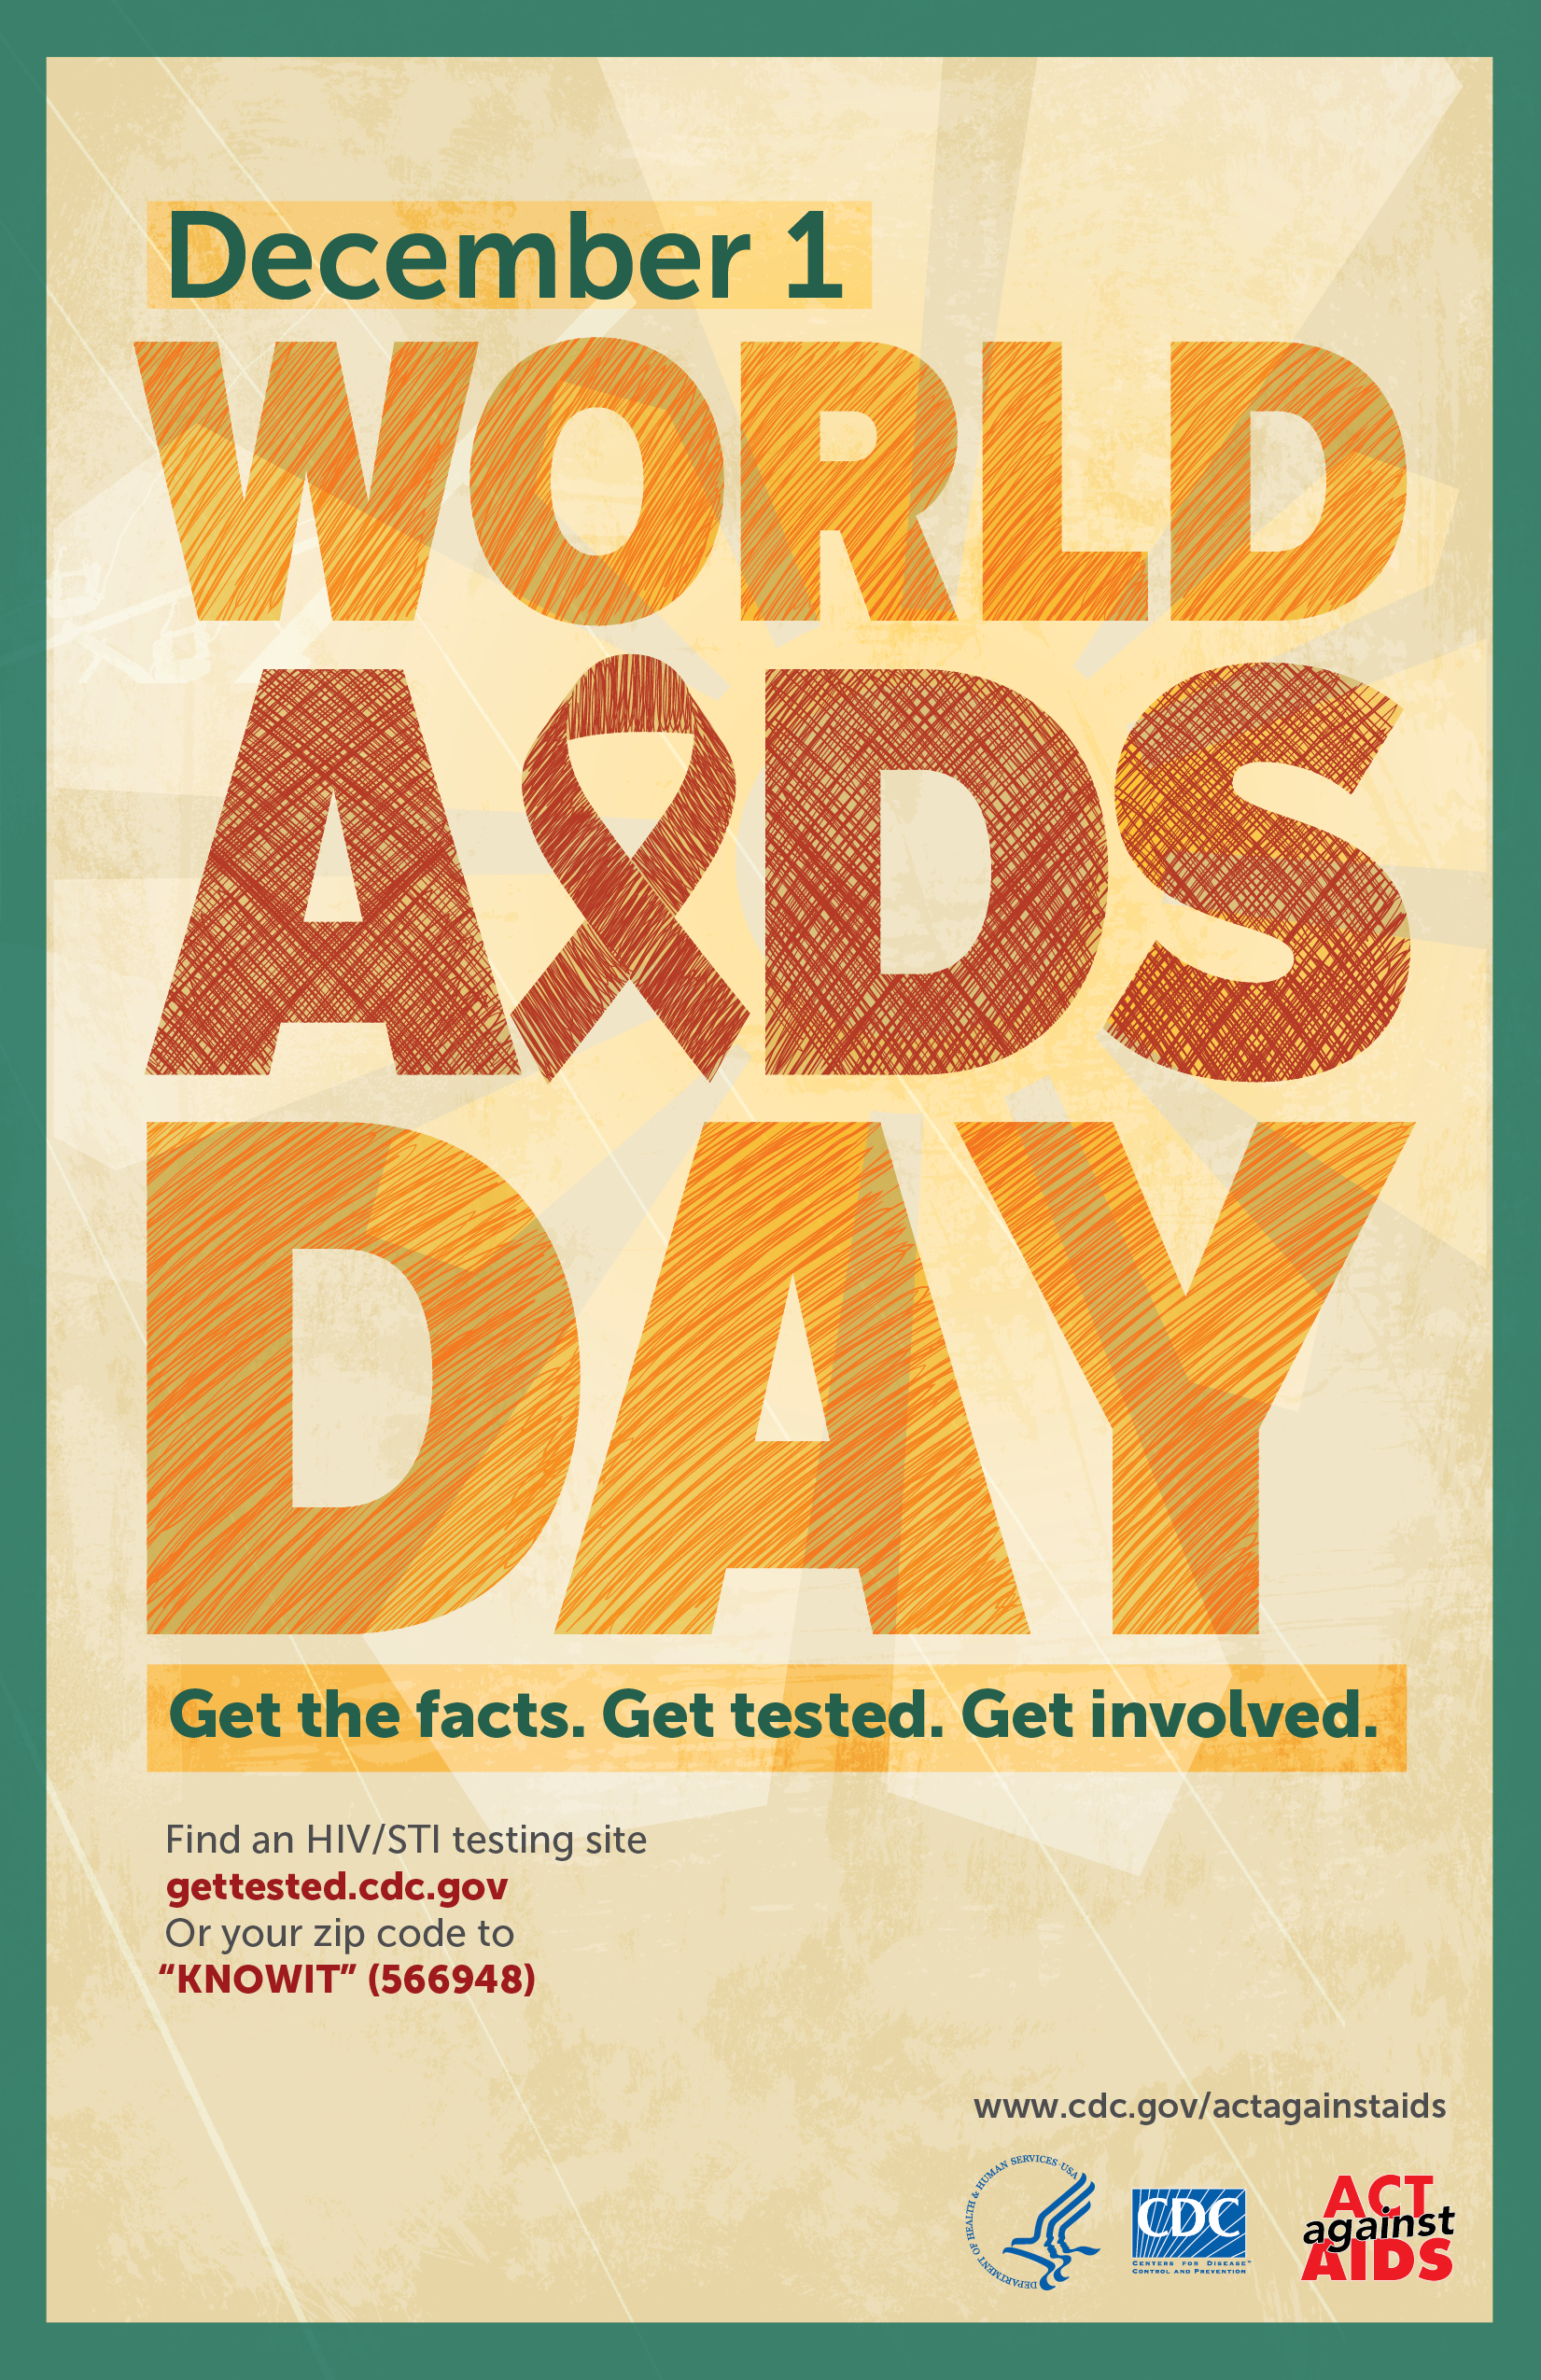 CDC - Library - Infographic Resources - HIV/AIDS